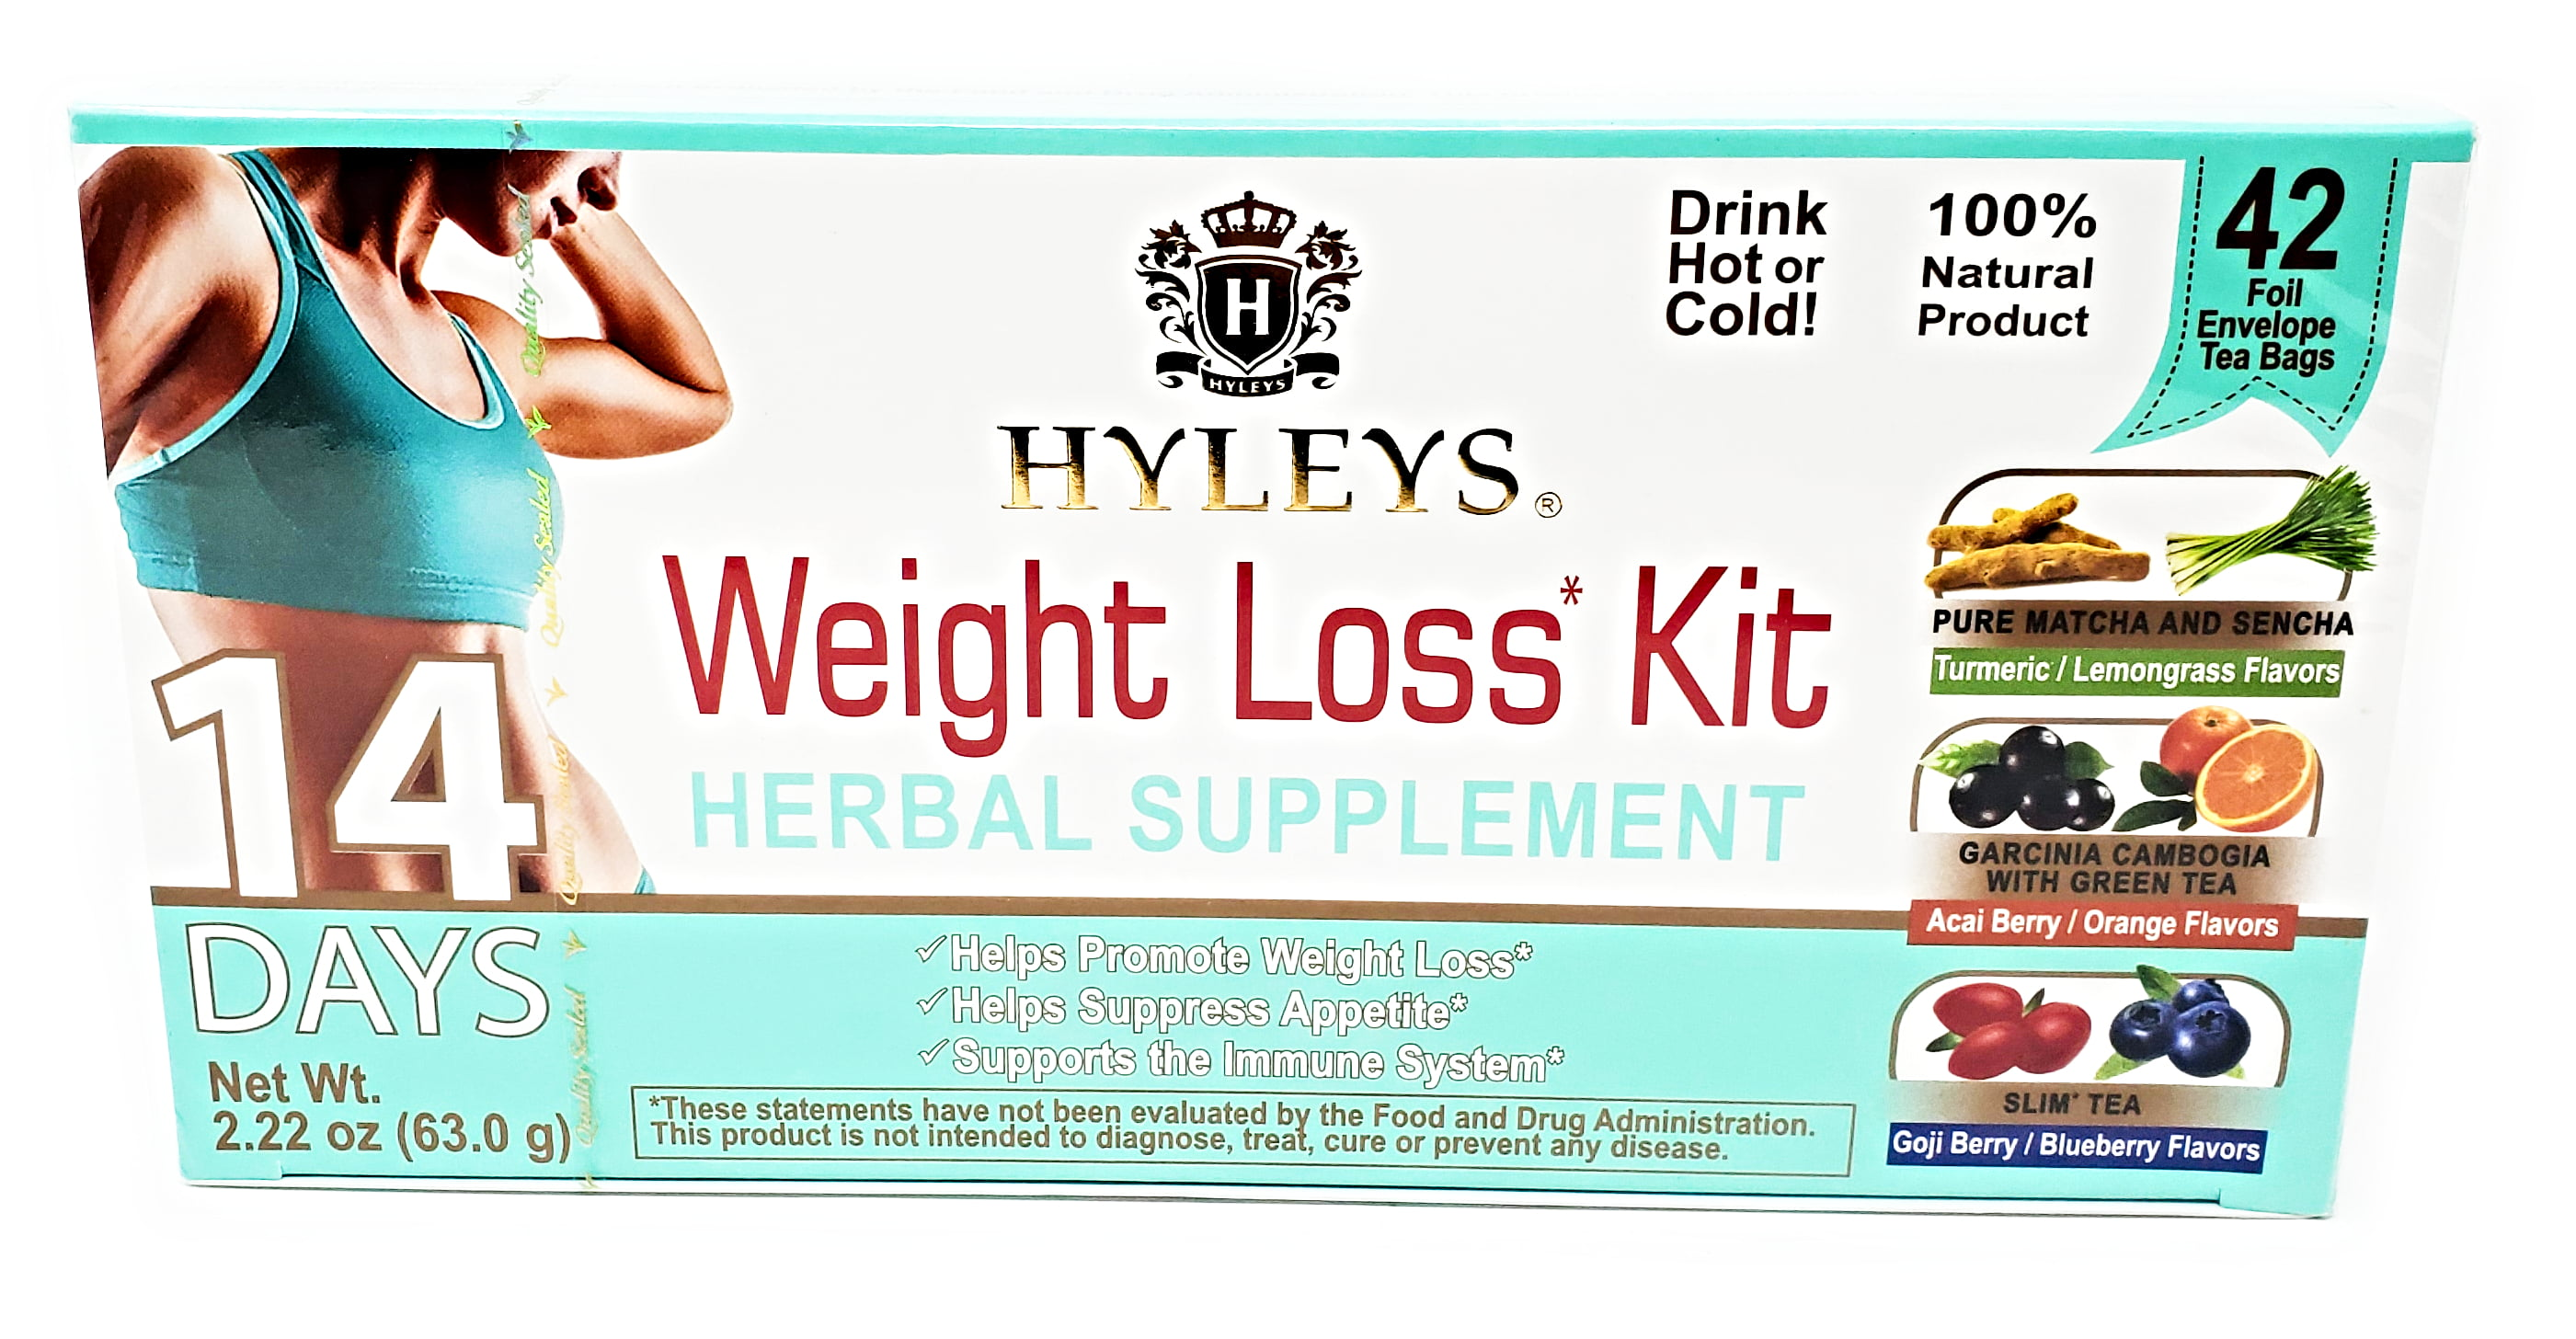 Hyleys 14 Day Weight Loss Kit 42 Foil Envelope Tea Bags Slim Tea